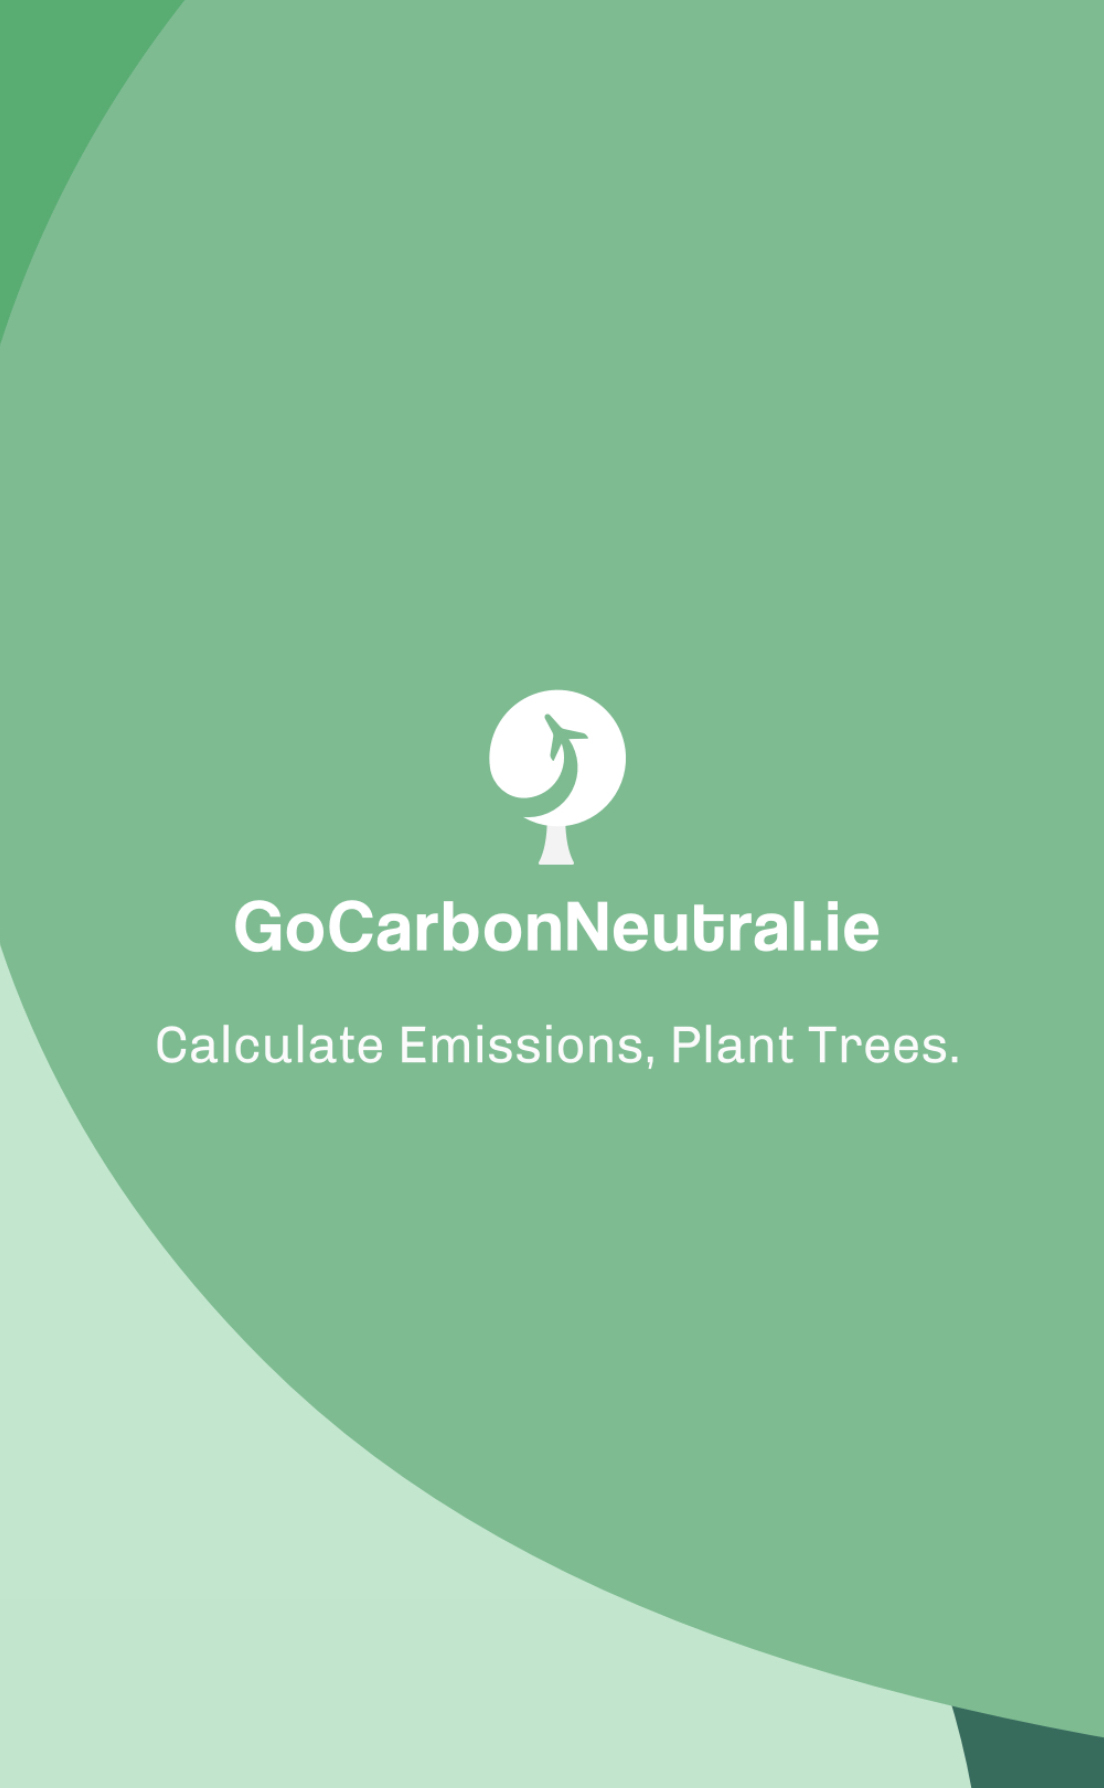 The GoCarbonNeutral.ie app has launched